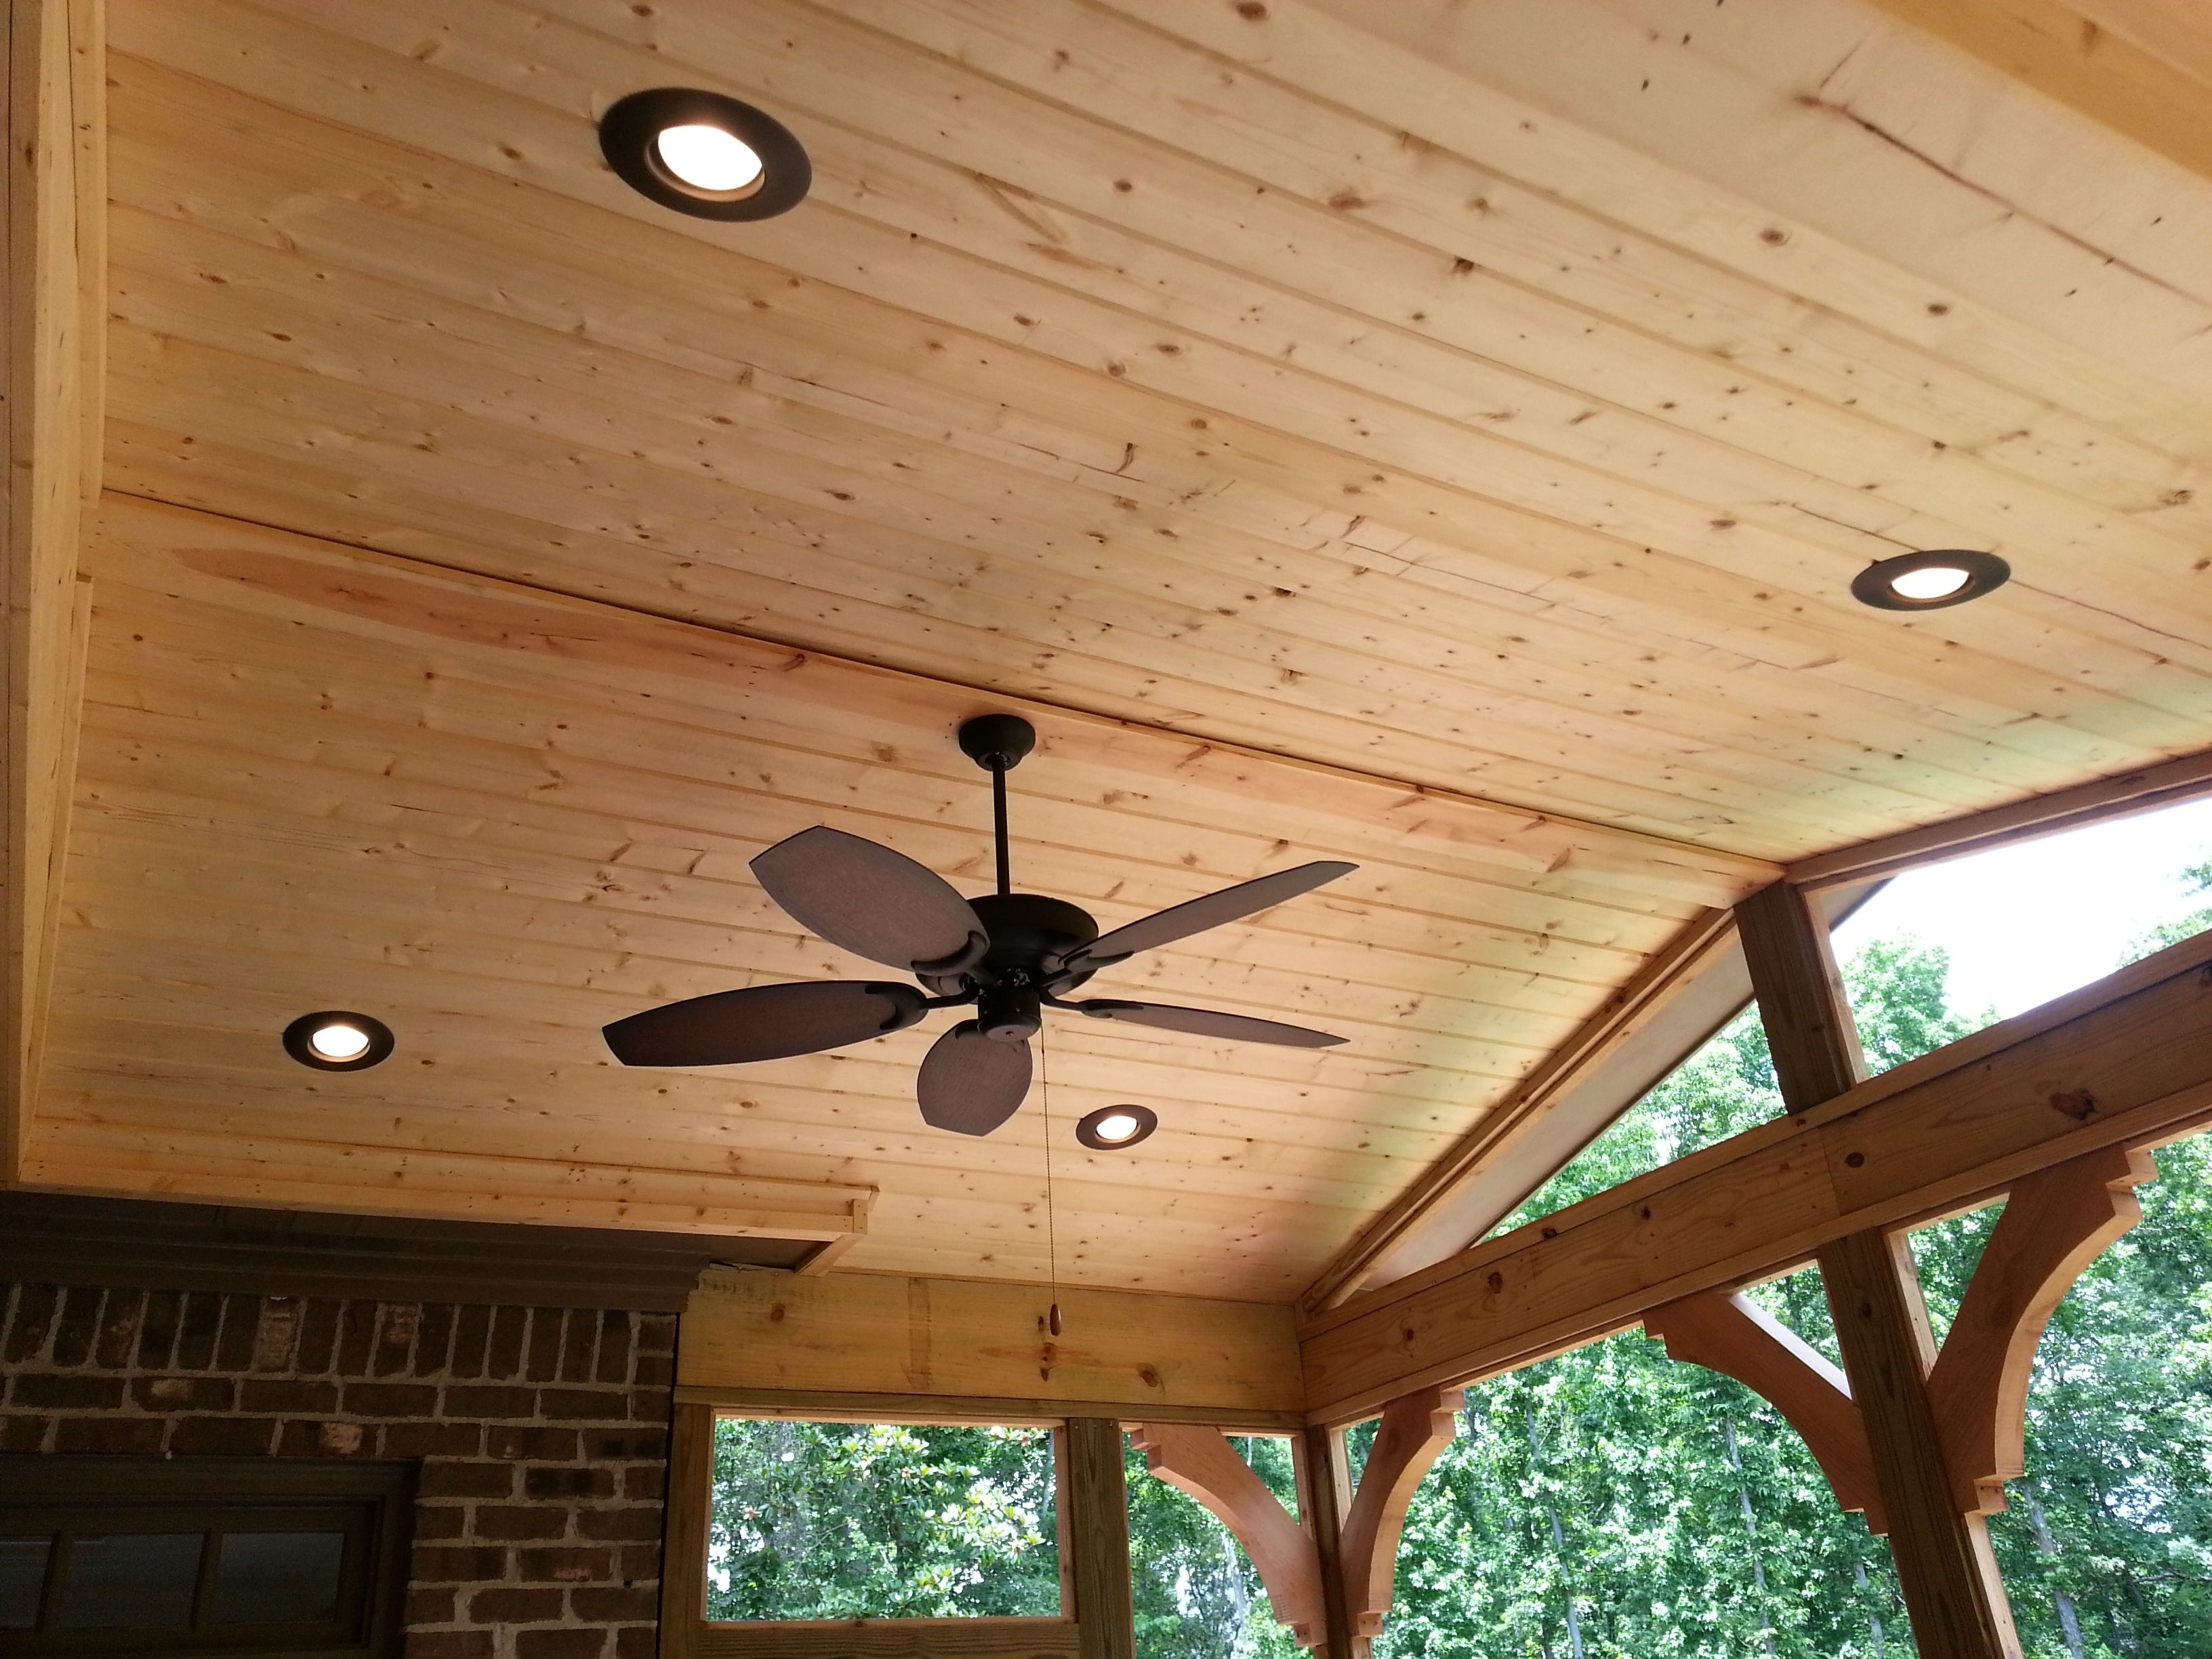 2018 Finished Ceiling With Ceiling Fan And Can Lights – Design Ideas Regarding Outdoor Ceiling Fan Under Deck (Gallery 20 of 20)